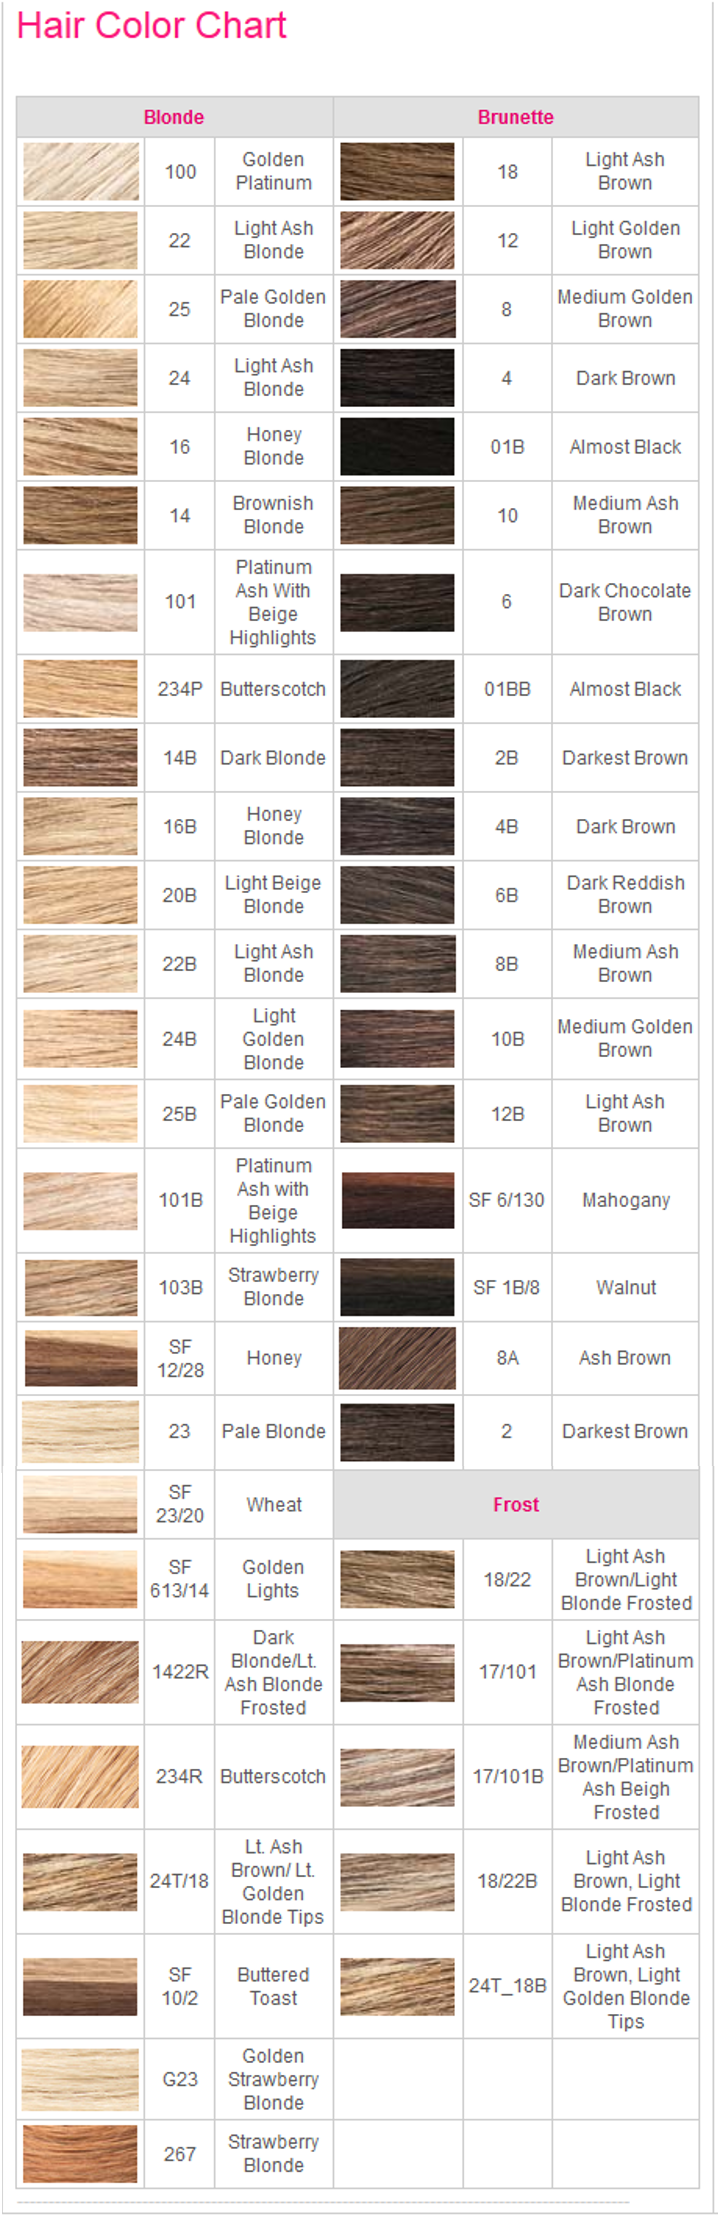 Hair color chart hair color chart nvjuhfo Images